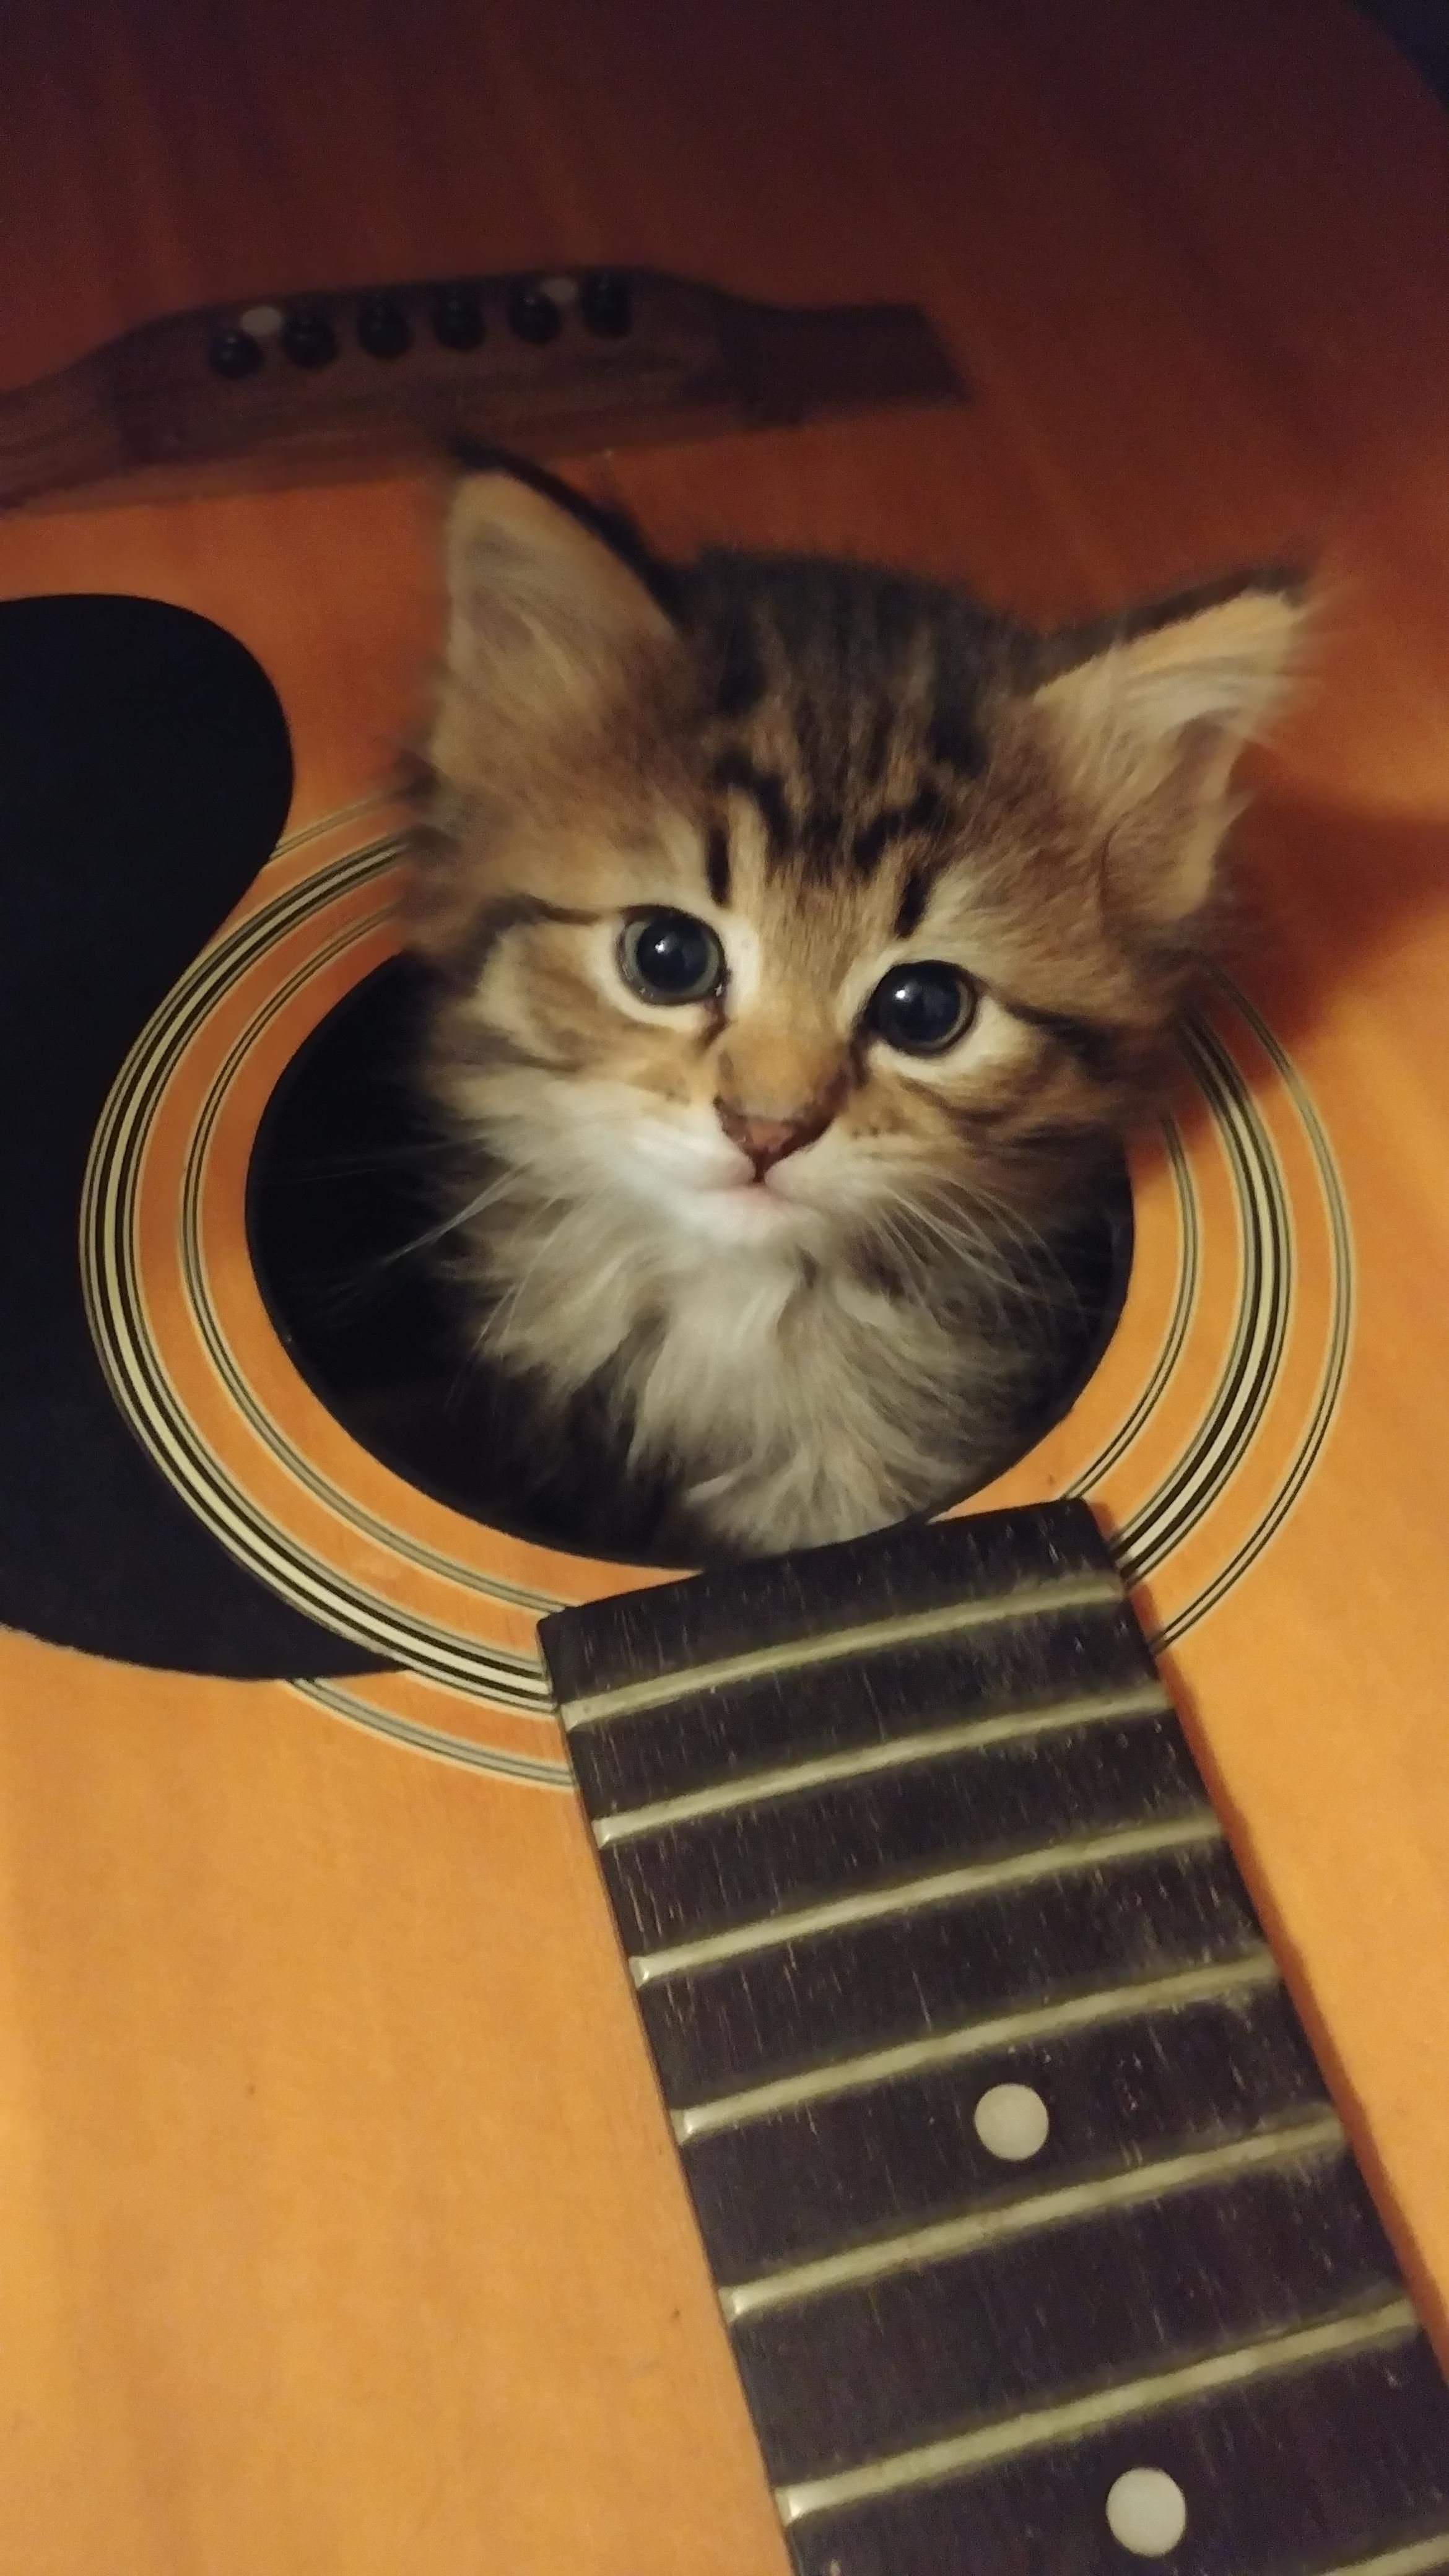 One Of My Kittens Crawled Into A Broken Guitar All By Herselfhttps I Redd It Y4ivv4y6xwa21 Jpg Broken Guitar Kittens Funny Guitar